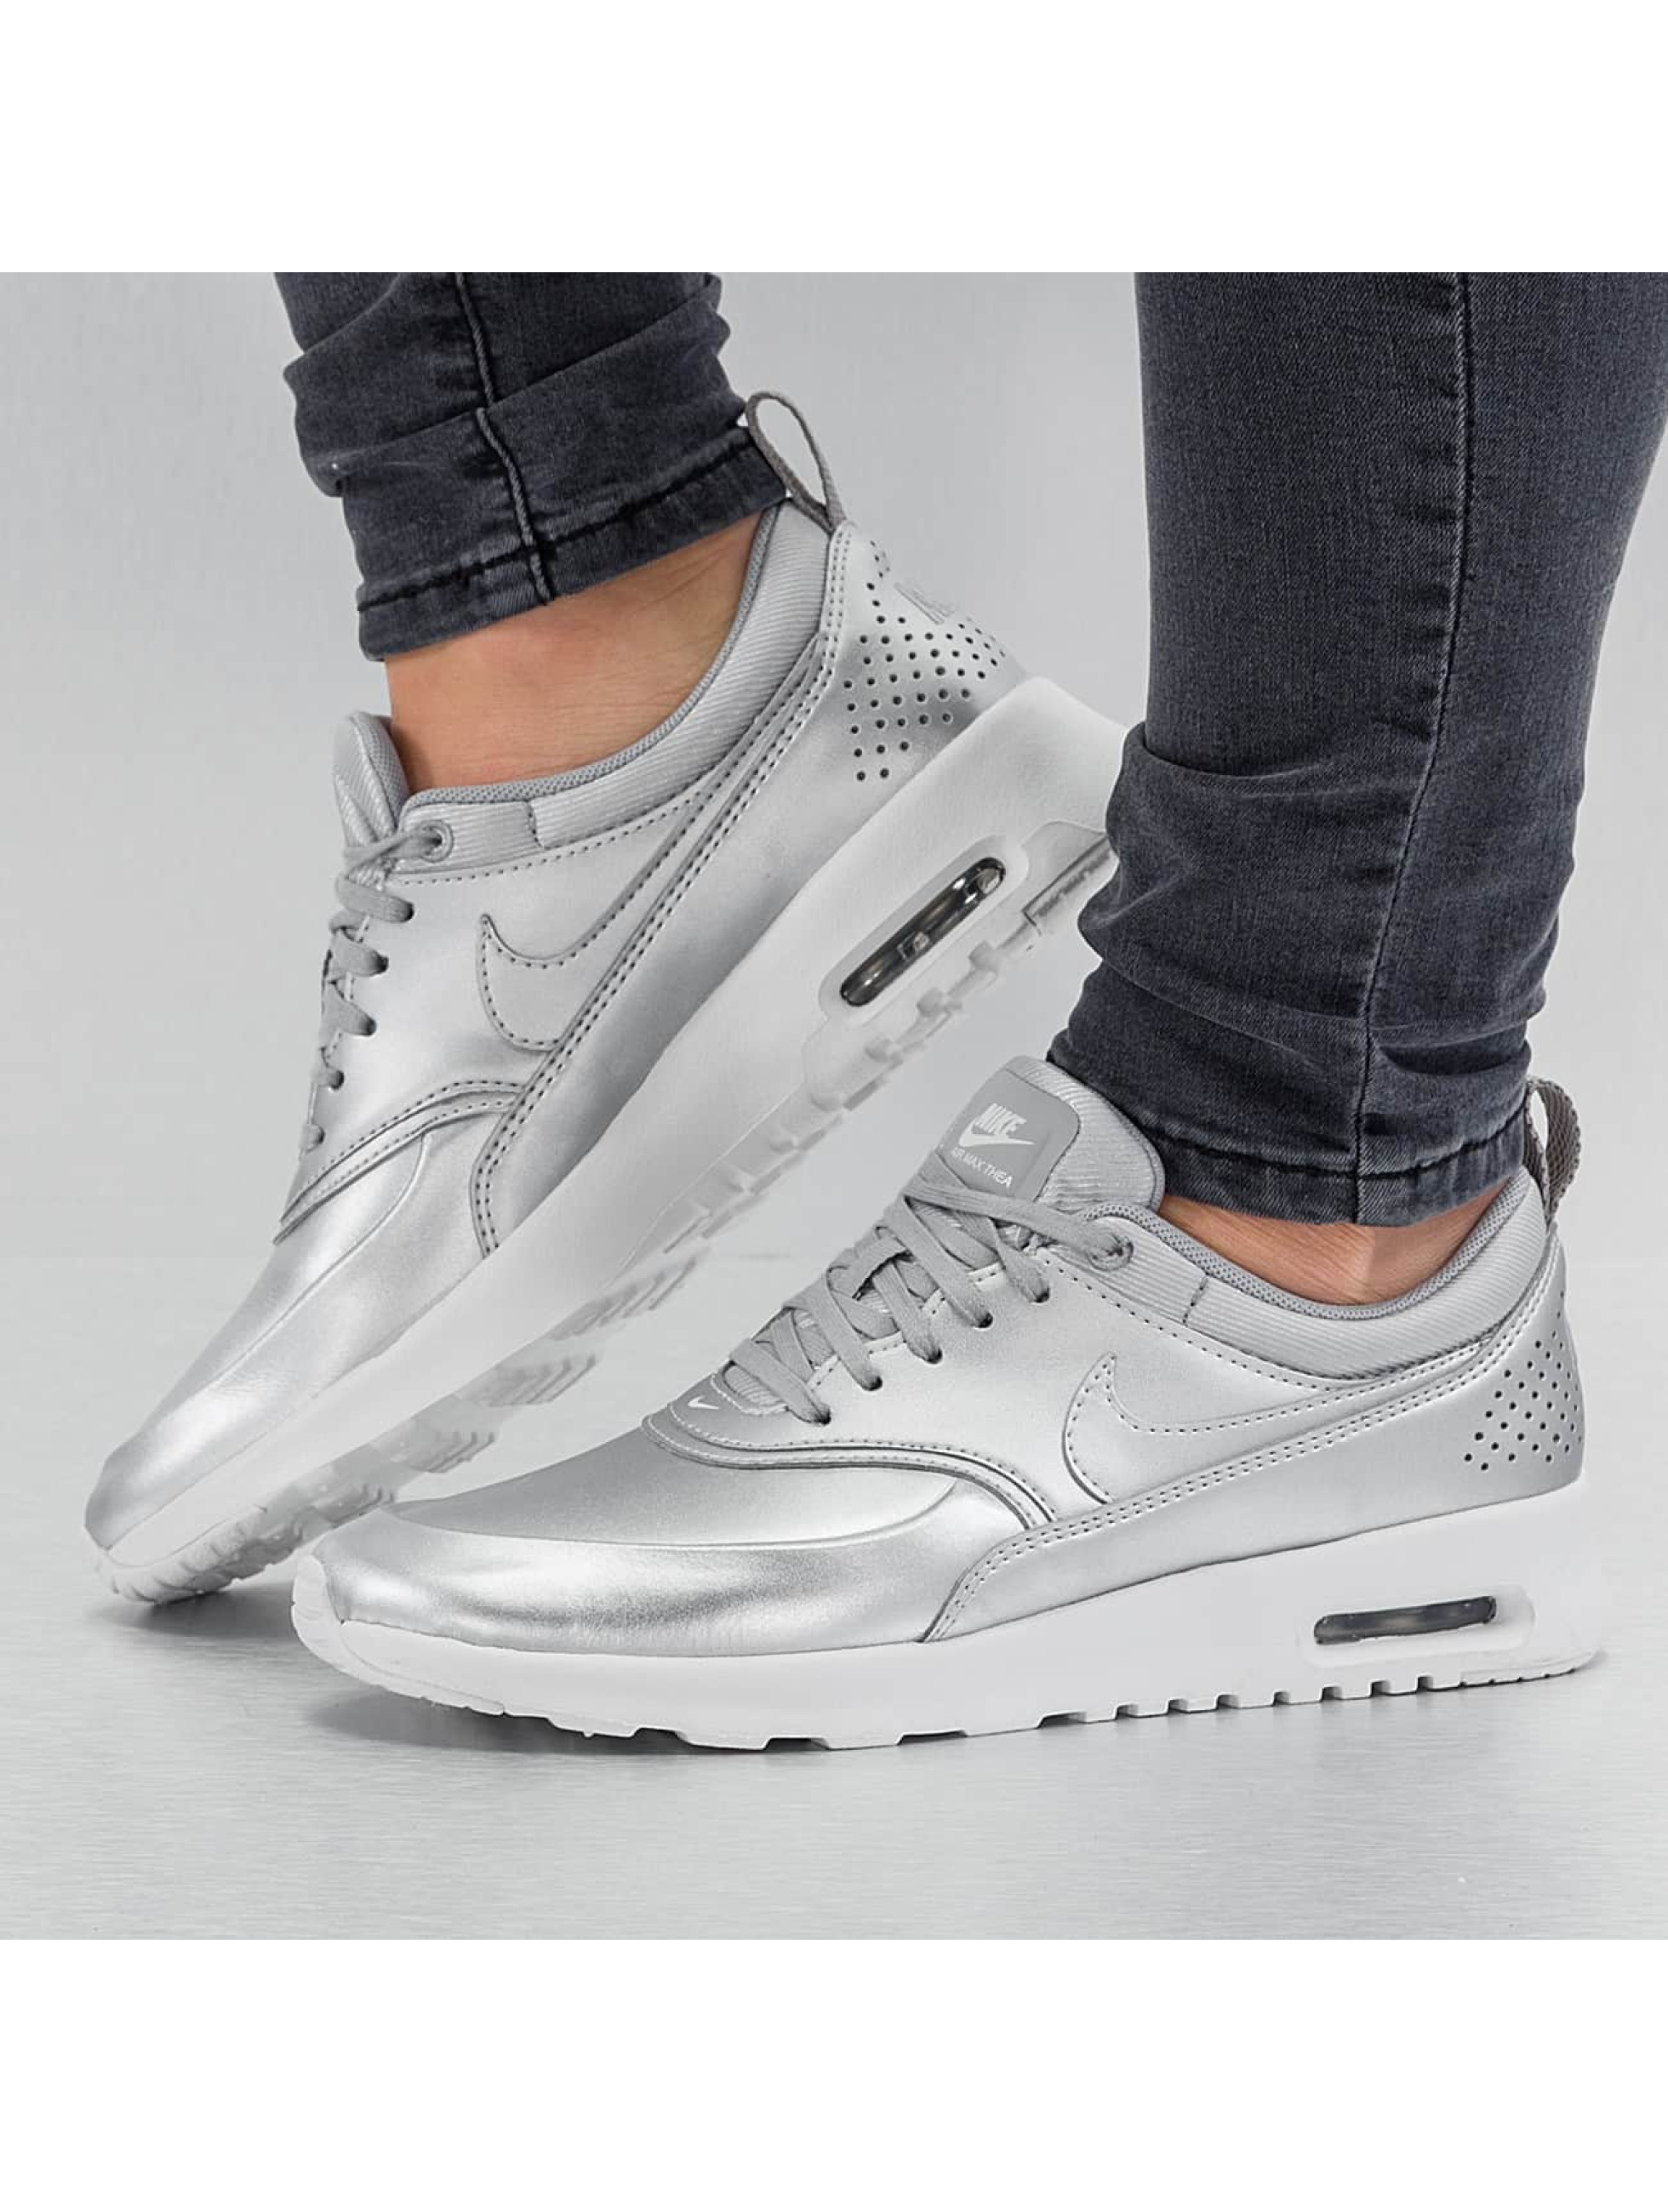 Sneaker Air Max Thea SE in silberfarben